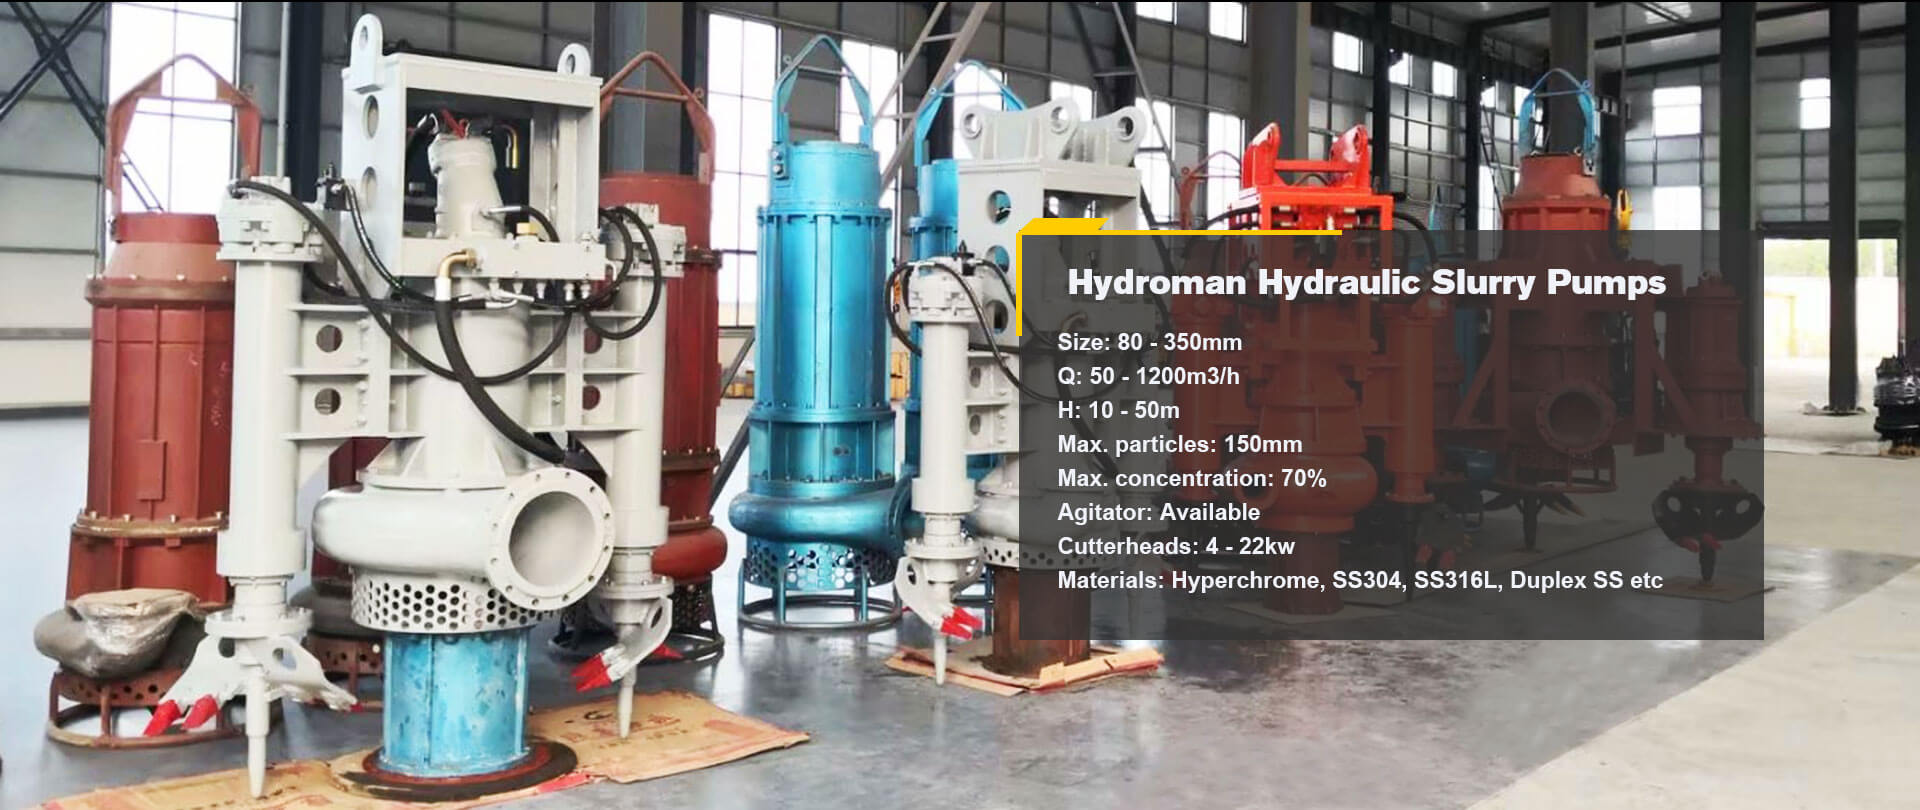 Hydroman Hydraulic Slurry Pumps